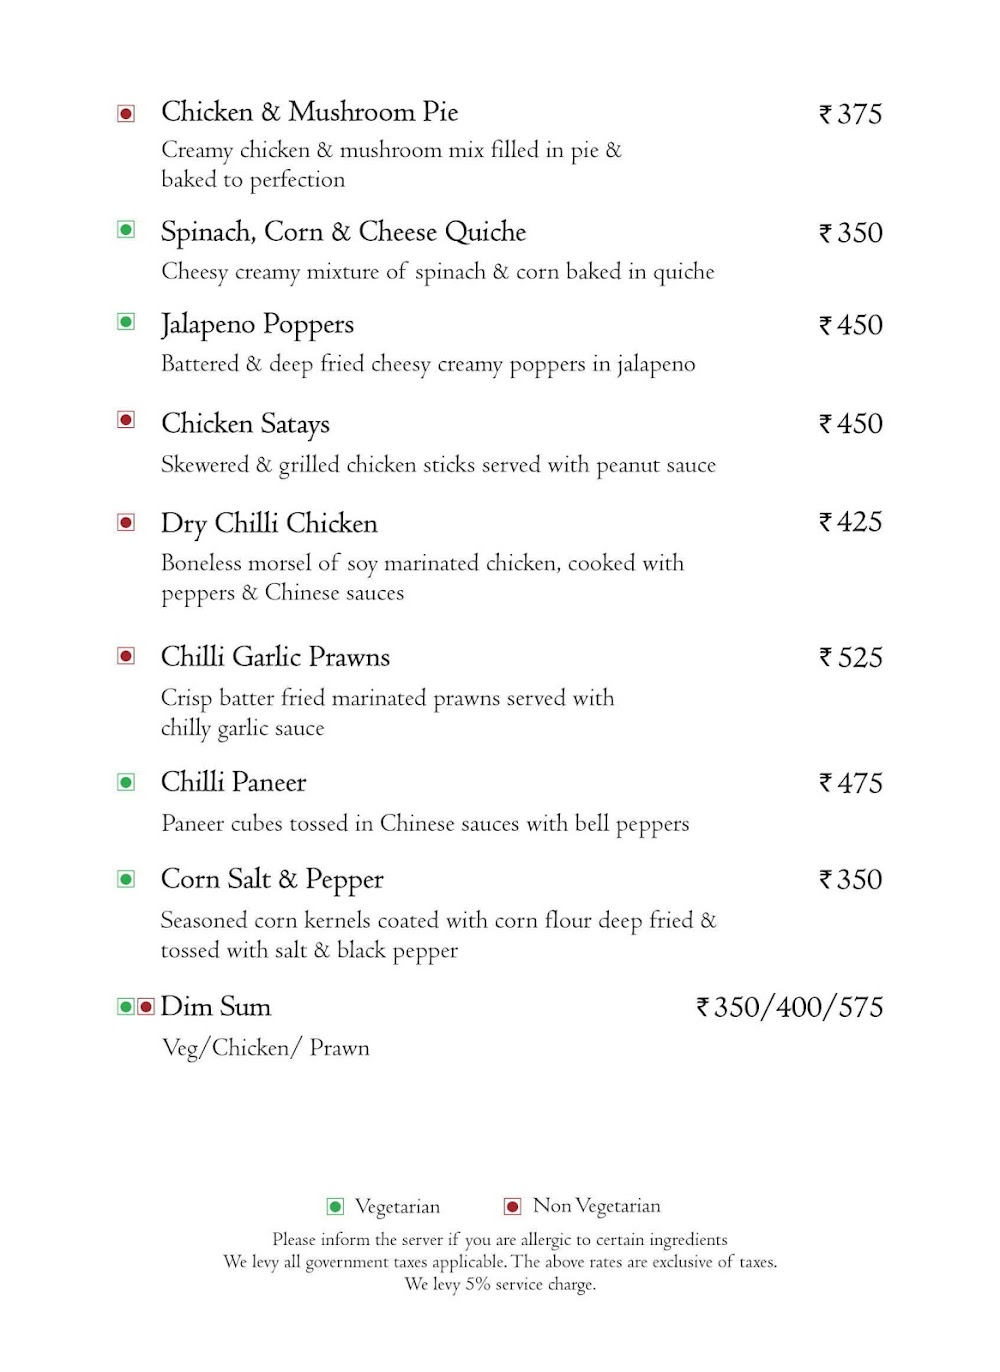 Branche - Golden Tulip Suites menu 15